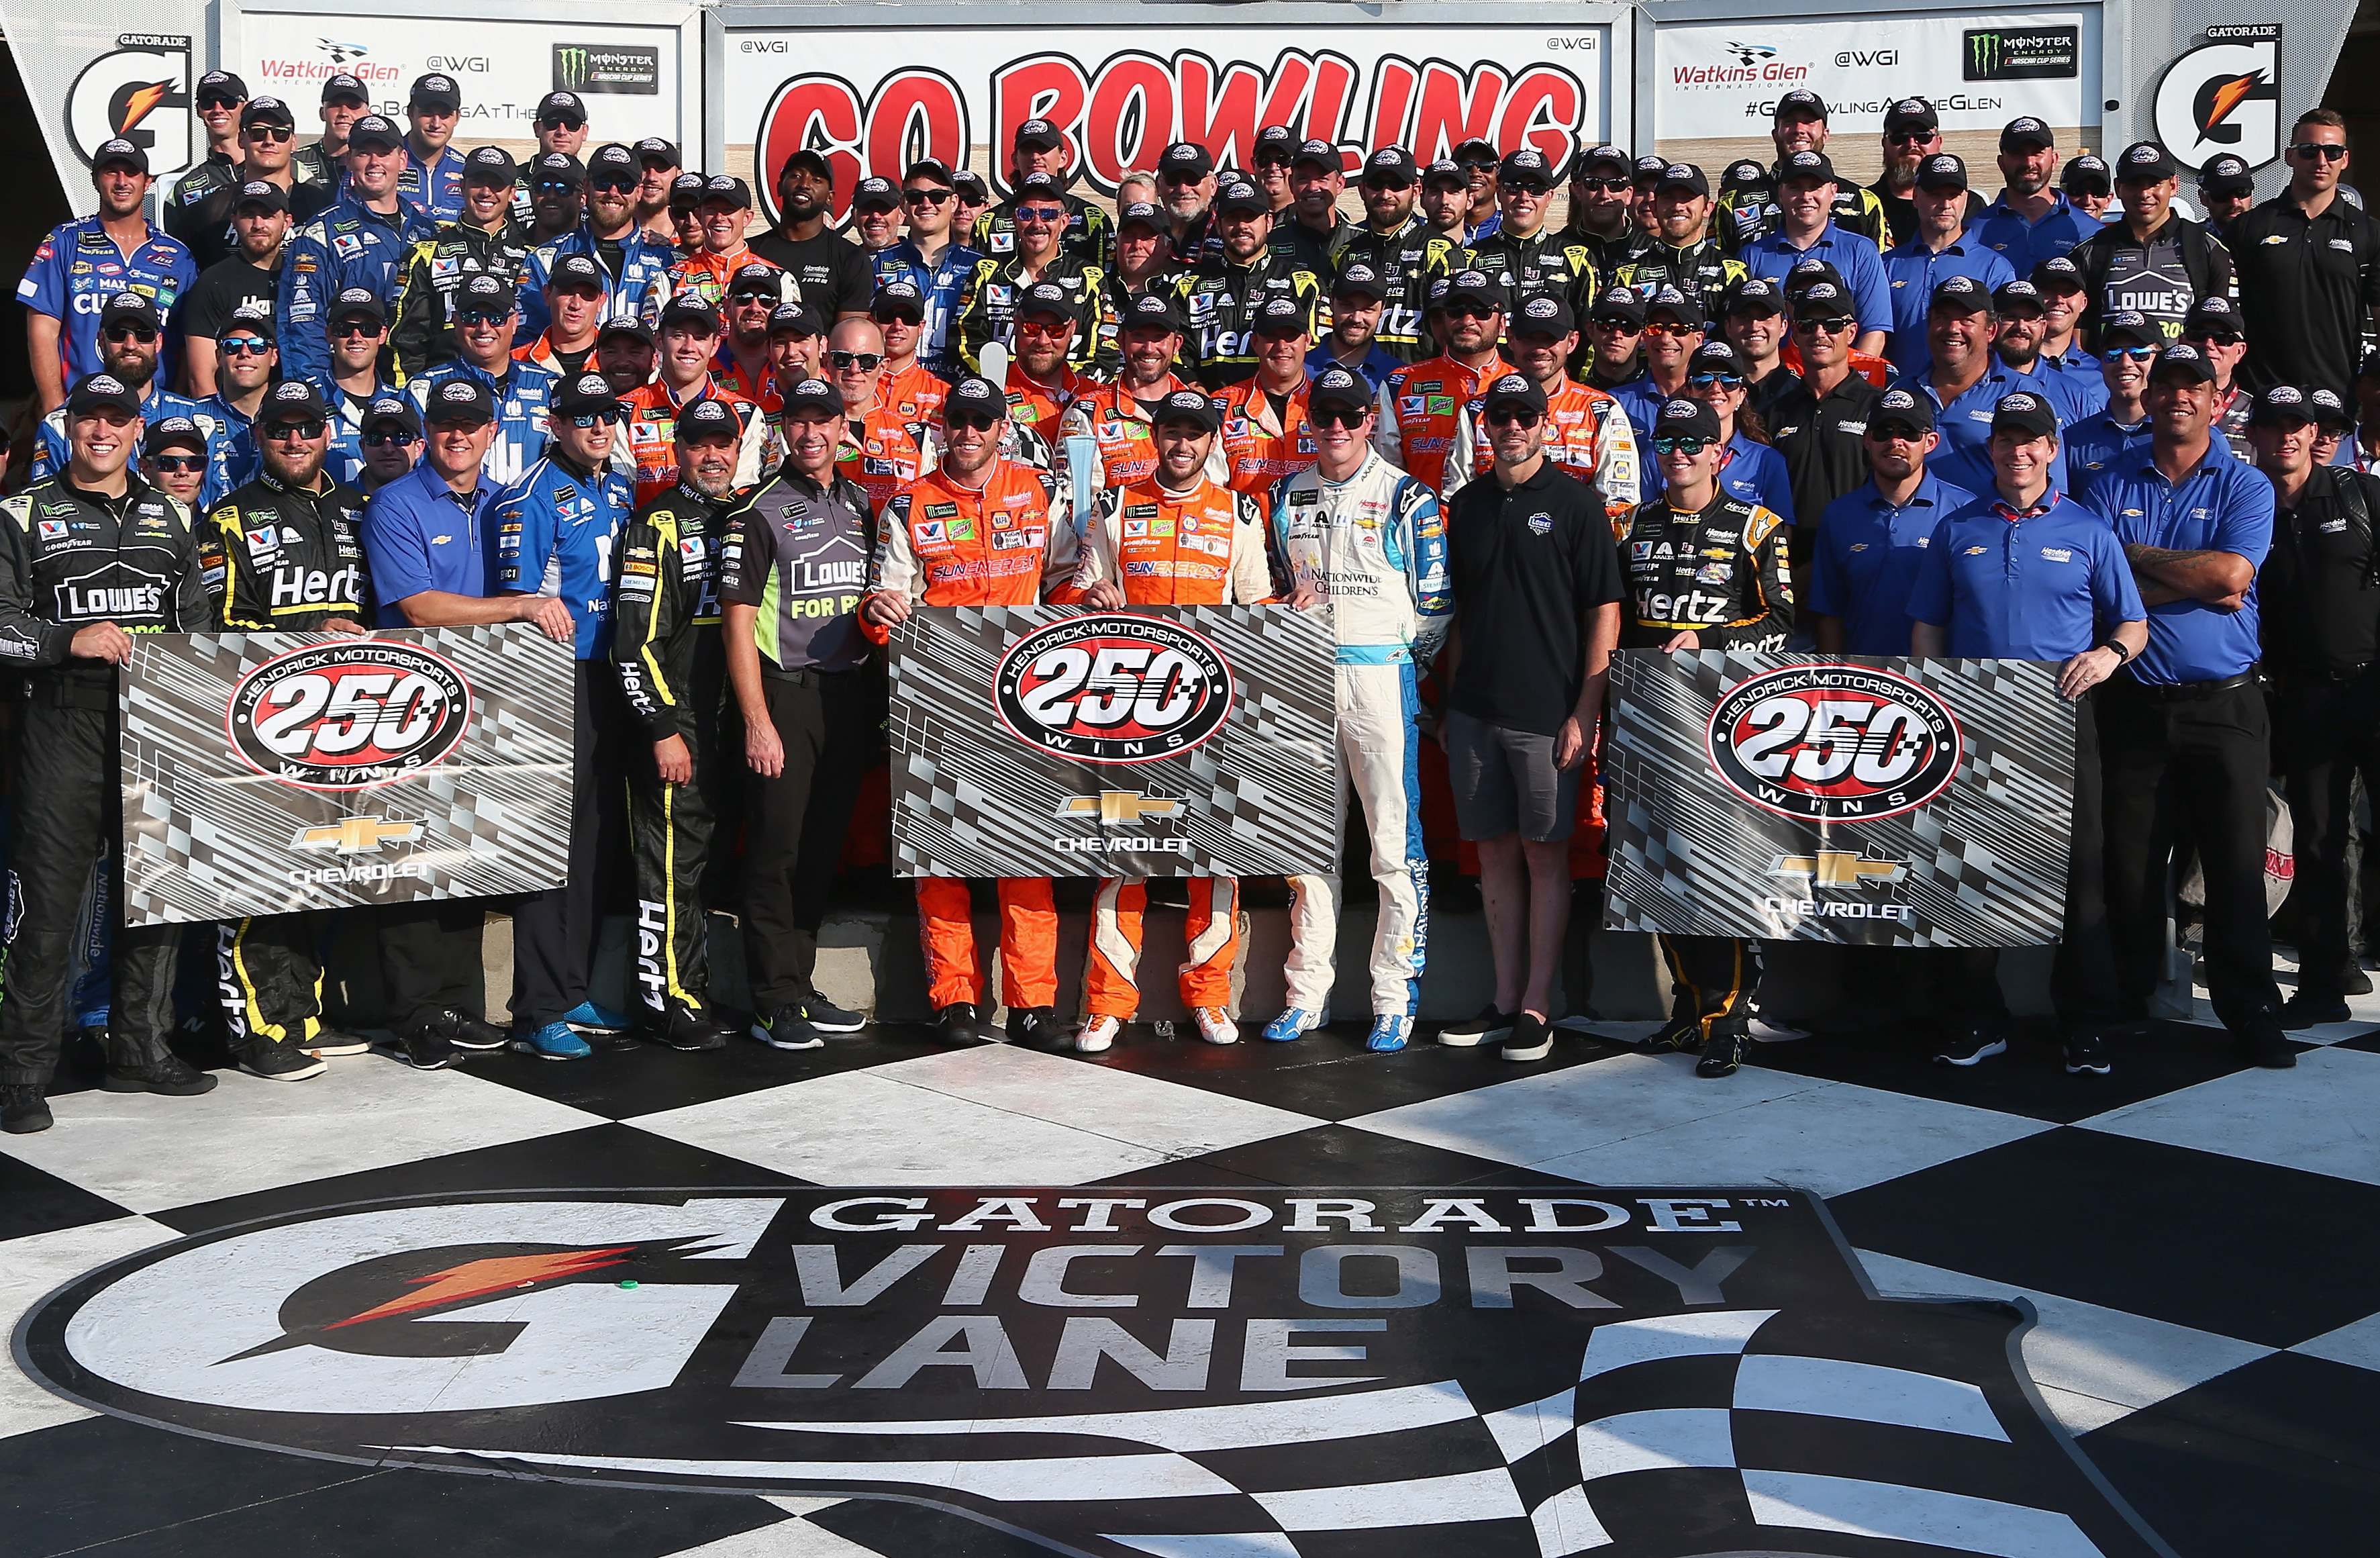 hendrick motorsports becomes second team in cup series history to